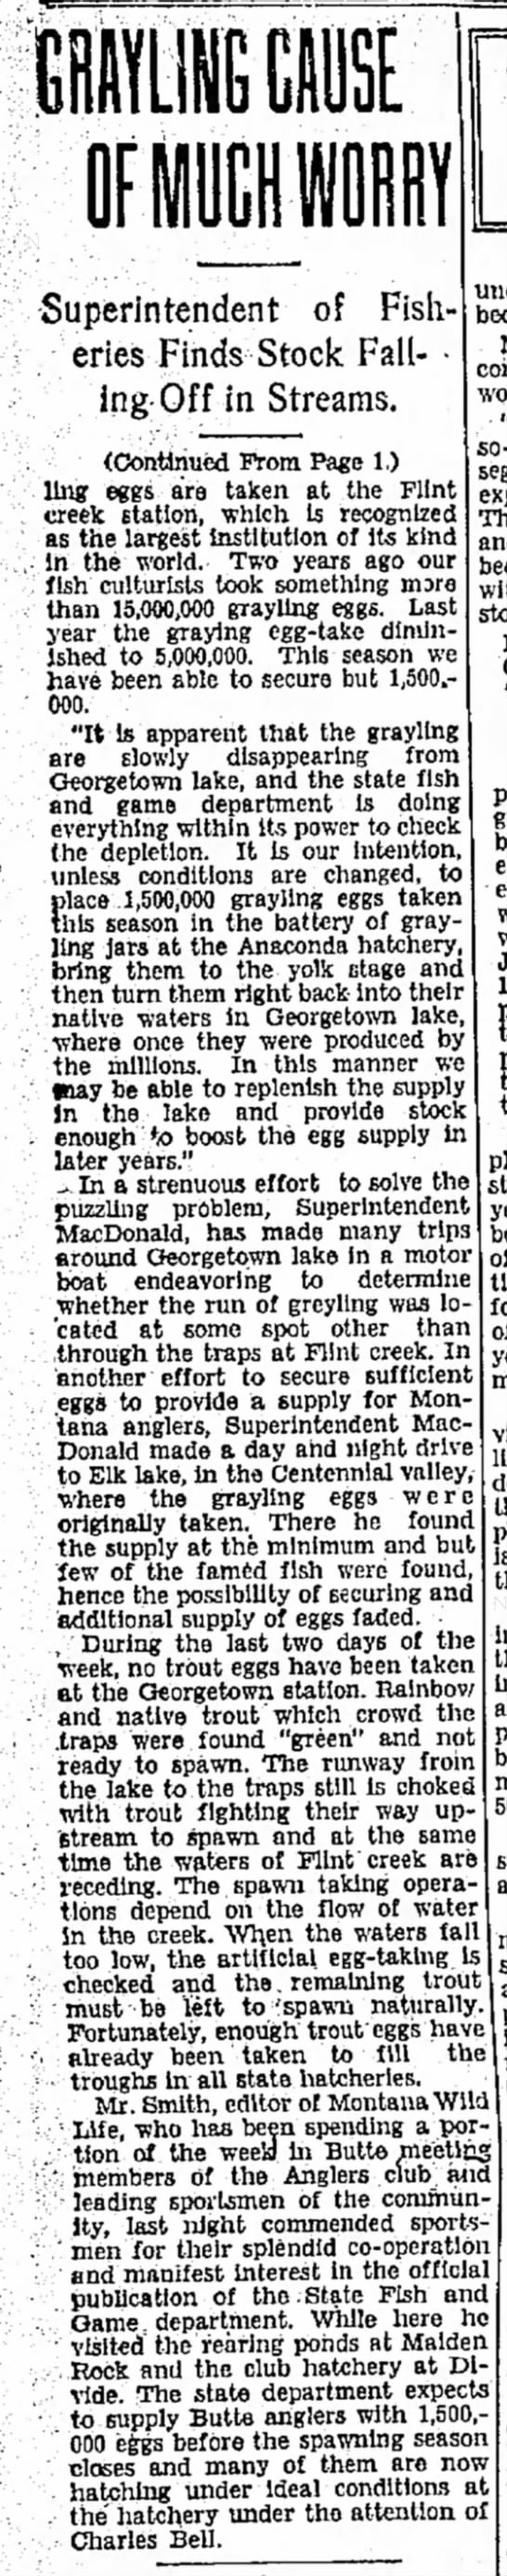 1931 June 14 grayling worry cont. - Superintendent of Fisheries Finds Stock Fall- •...